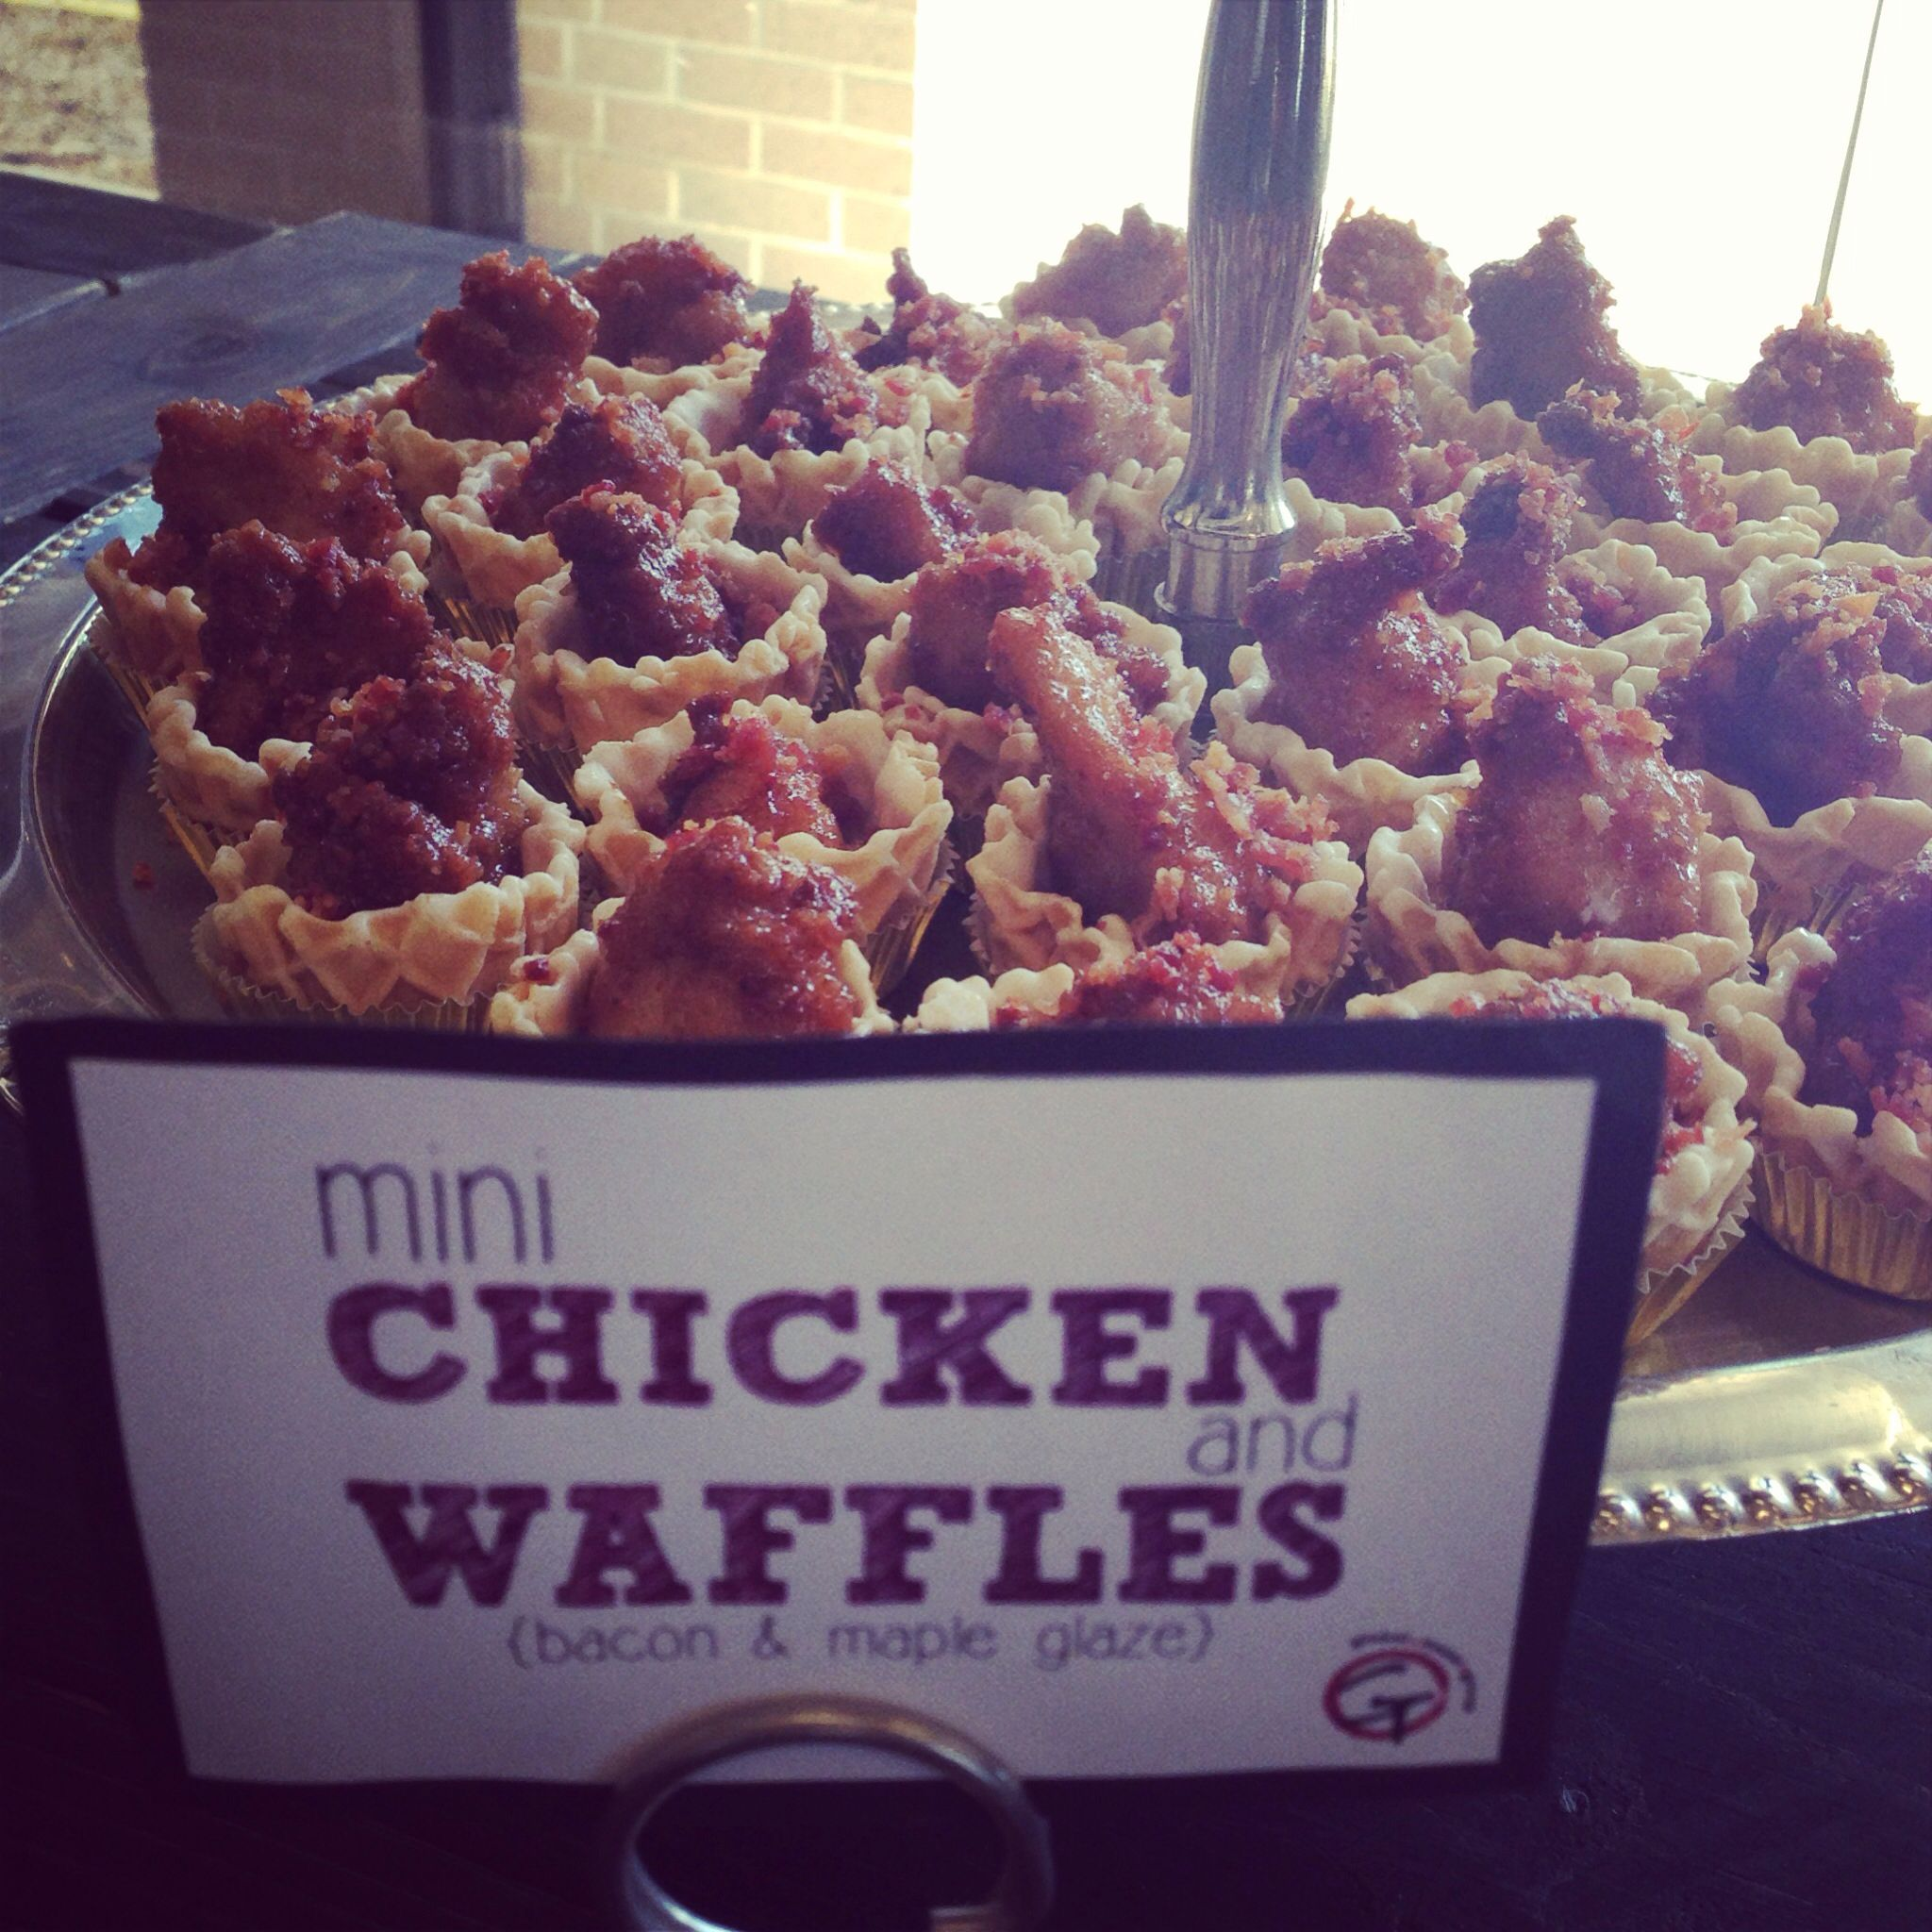 Soul Food Buffet Menu Wedding: Mini Chicken And Waffles With Bacon And Maple Glaze